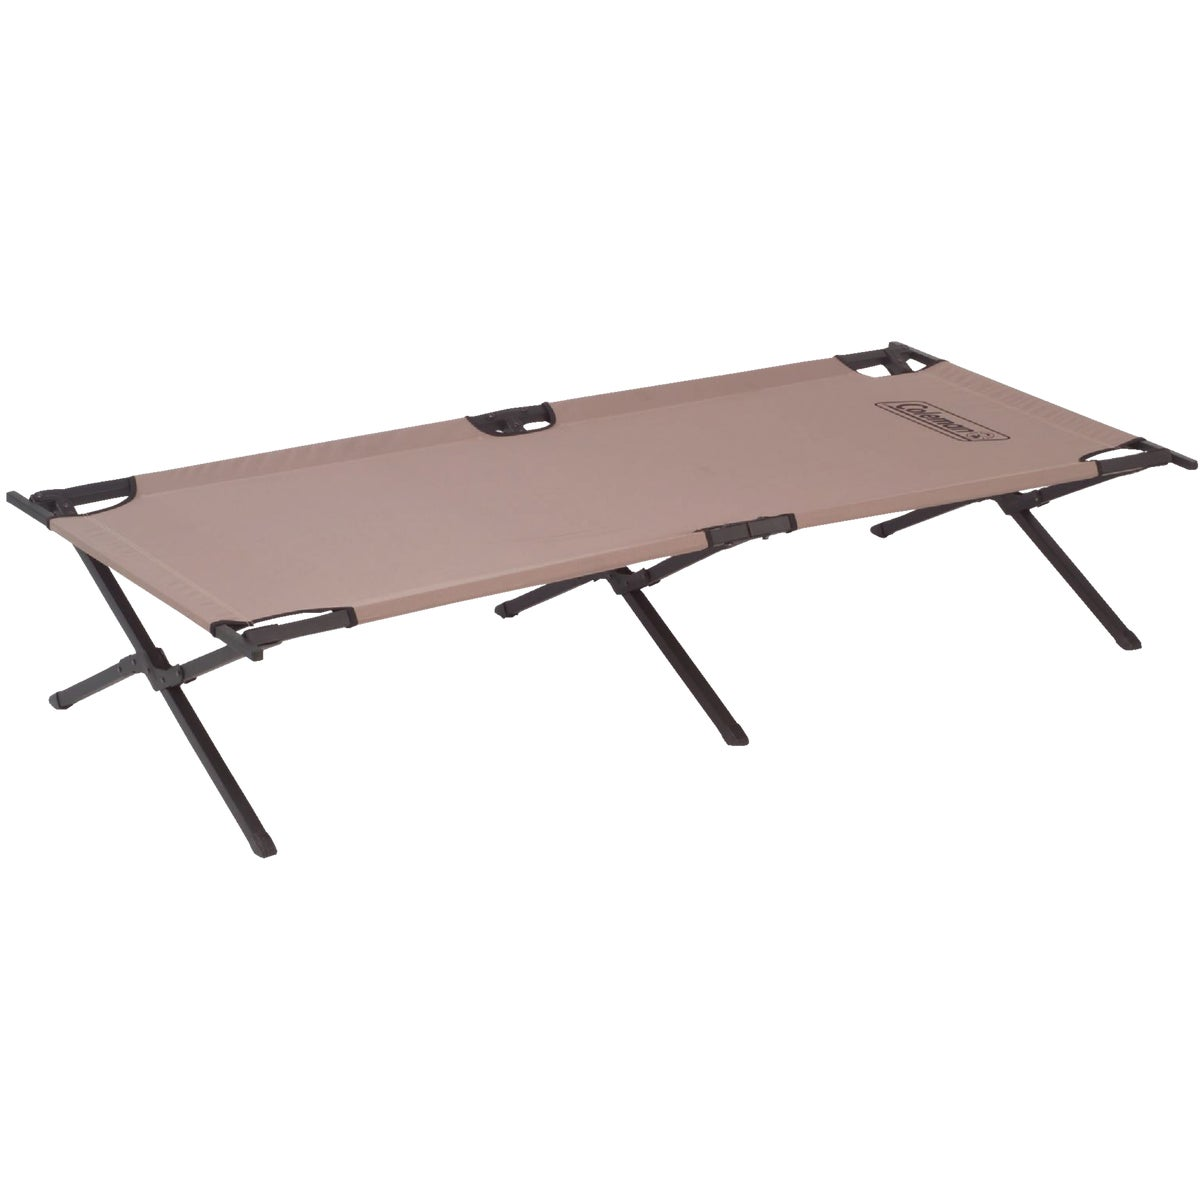 COT FOLDING TRAILHEADII - 200003209 by Coleman